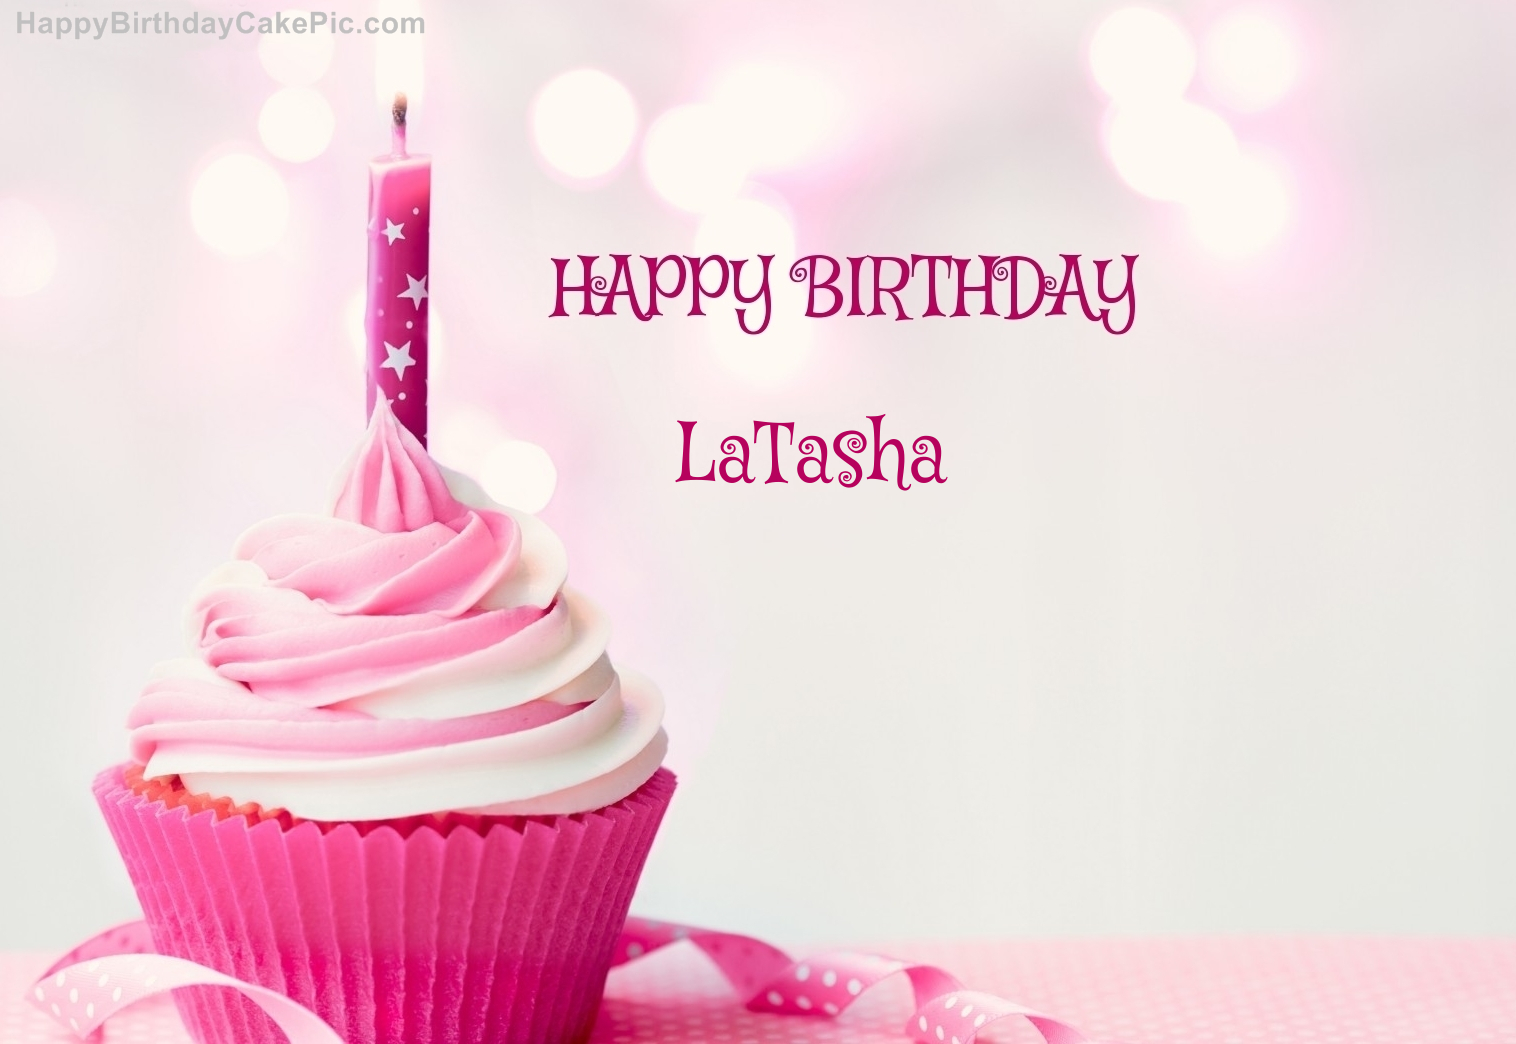 ️ Happy Birthday Cupcake Candle Pink Cake For Latasha